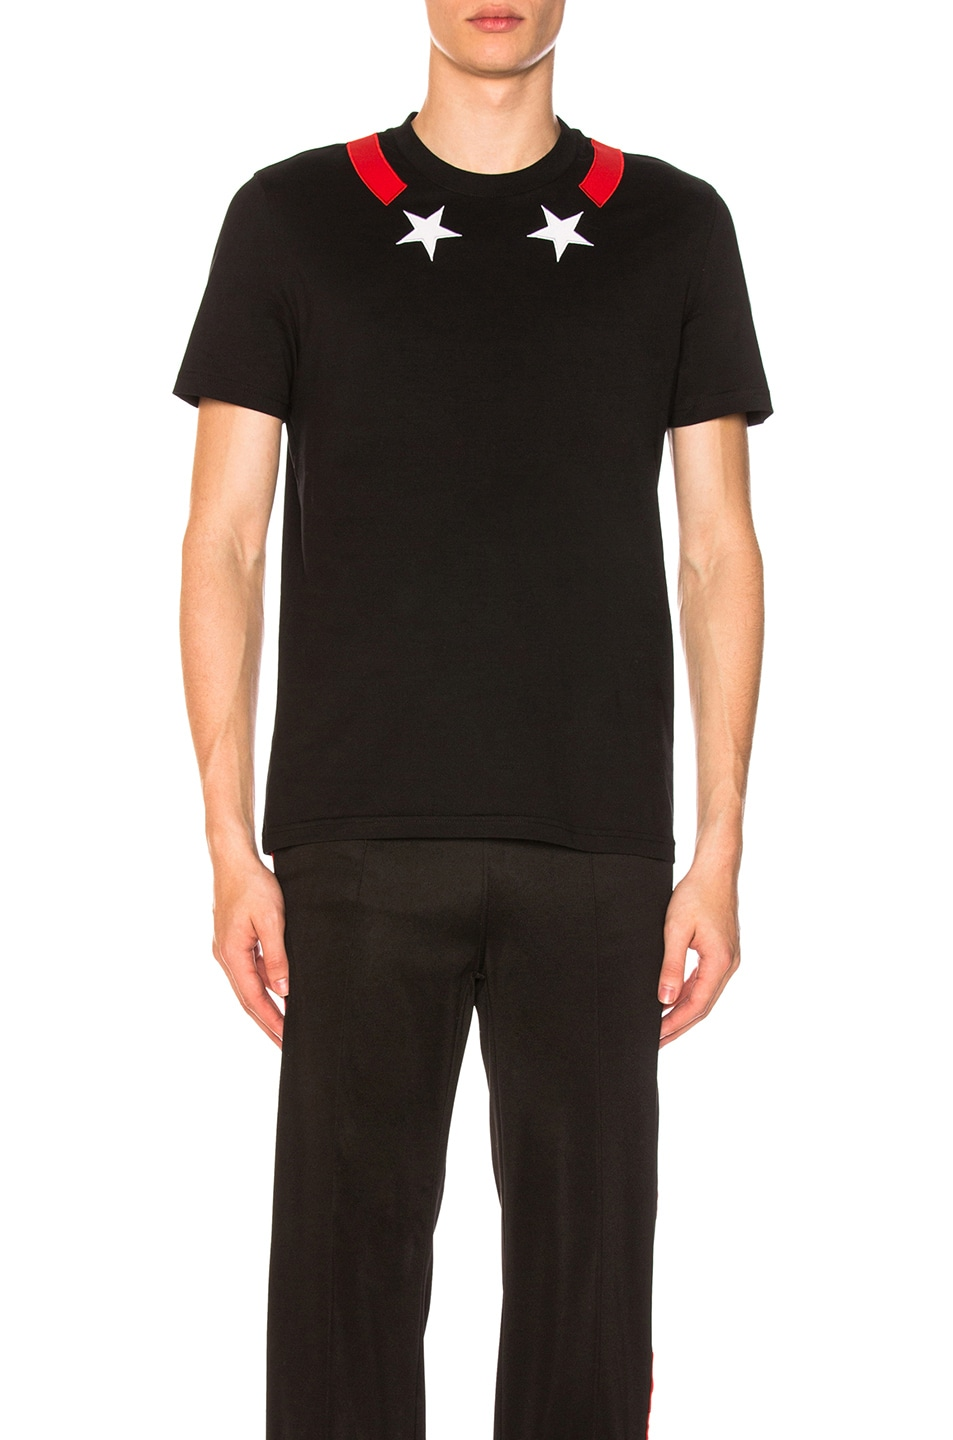 009a9466 Image 1 of Givenchy Star Neck T-Shirt in Black